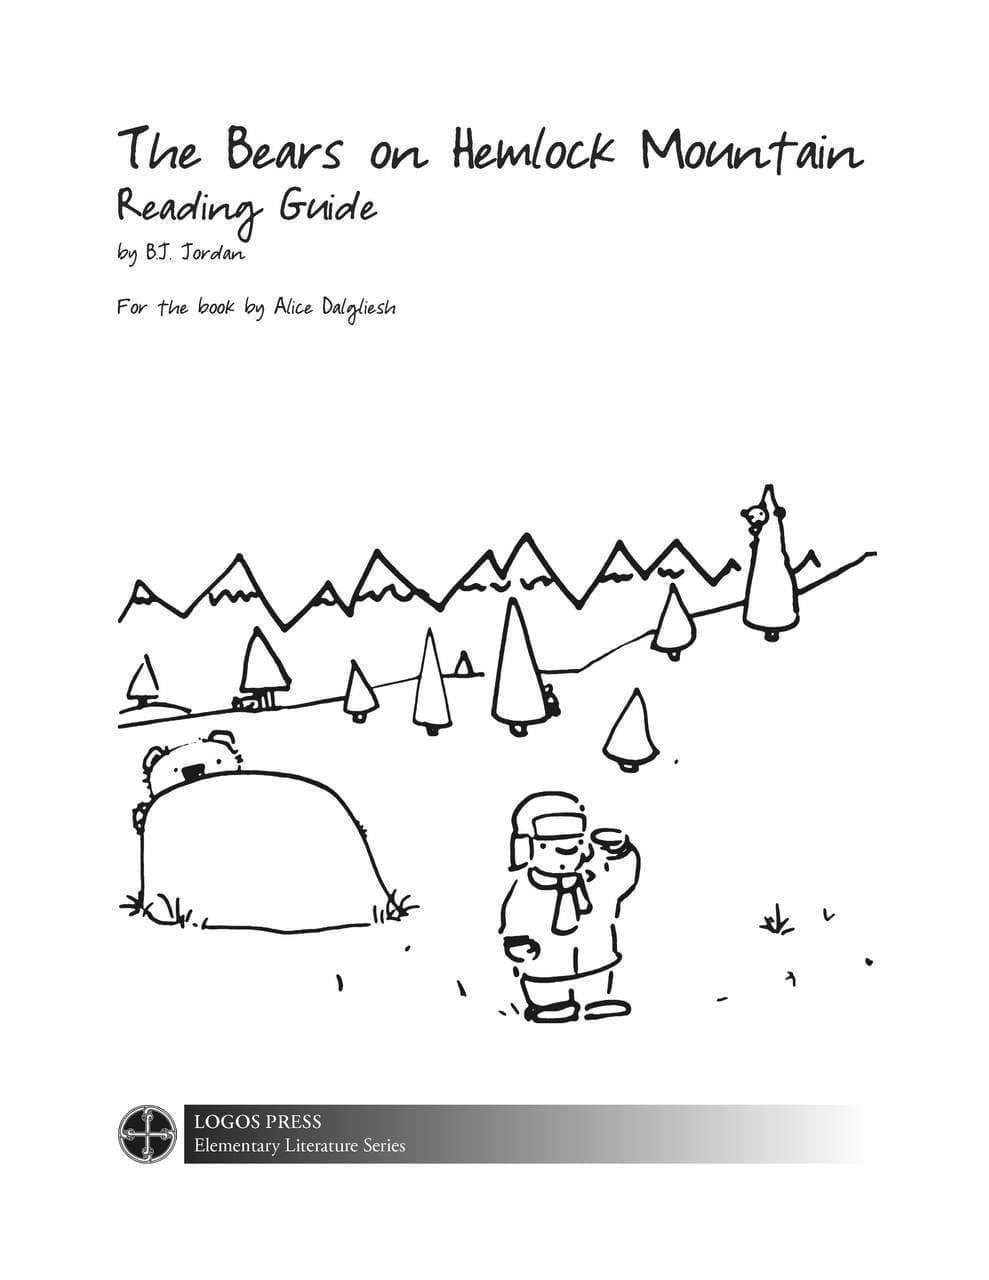 The Bears on Hemlock Mountain – Reading Guide (Download)